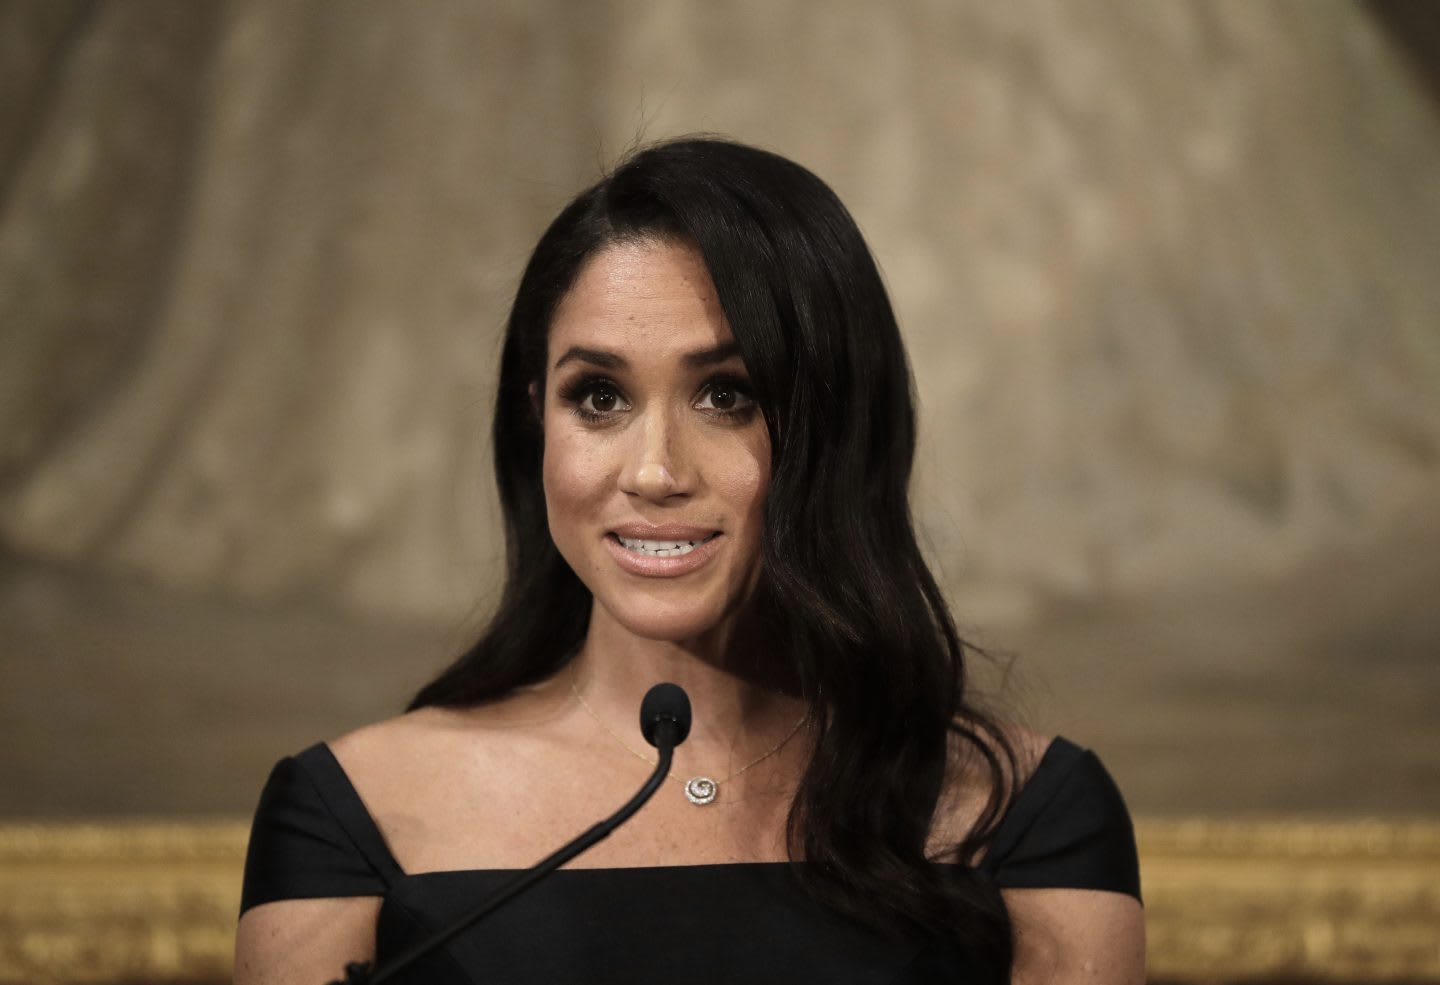 Meghan Markle talking into a microphone. diversity, gender equality, empowerment, women, GamePlan A